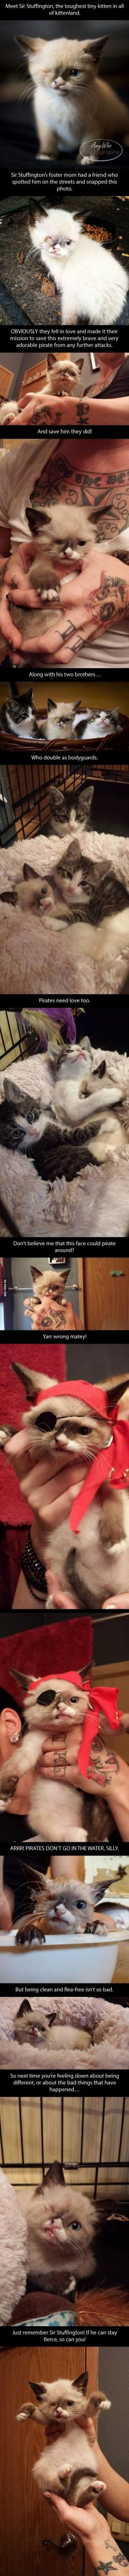 Meet Sir Stuffington, The Cutest Pirate In The World.....so glad he has a loving home with awesome human parents who took in his siblings as well, this makes my heart happy!: Cutest Pirate, Guy, Pirate Kitten, Cat Lady, Animal